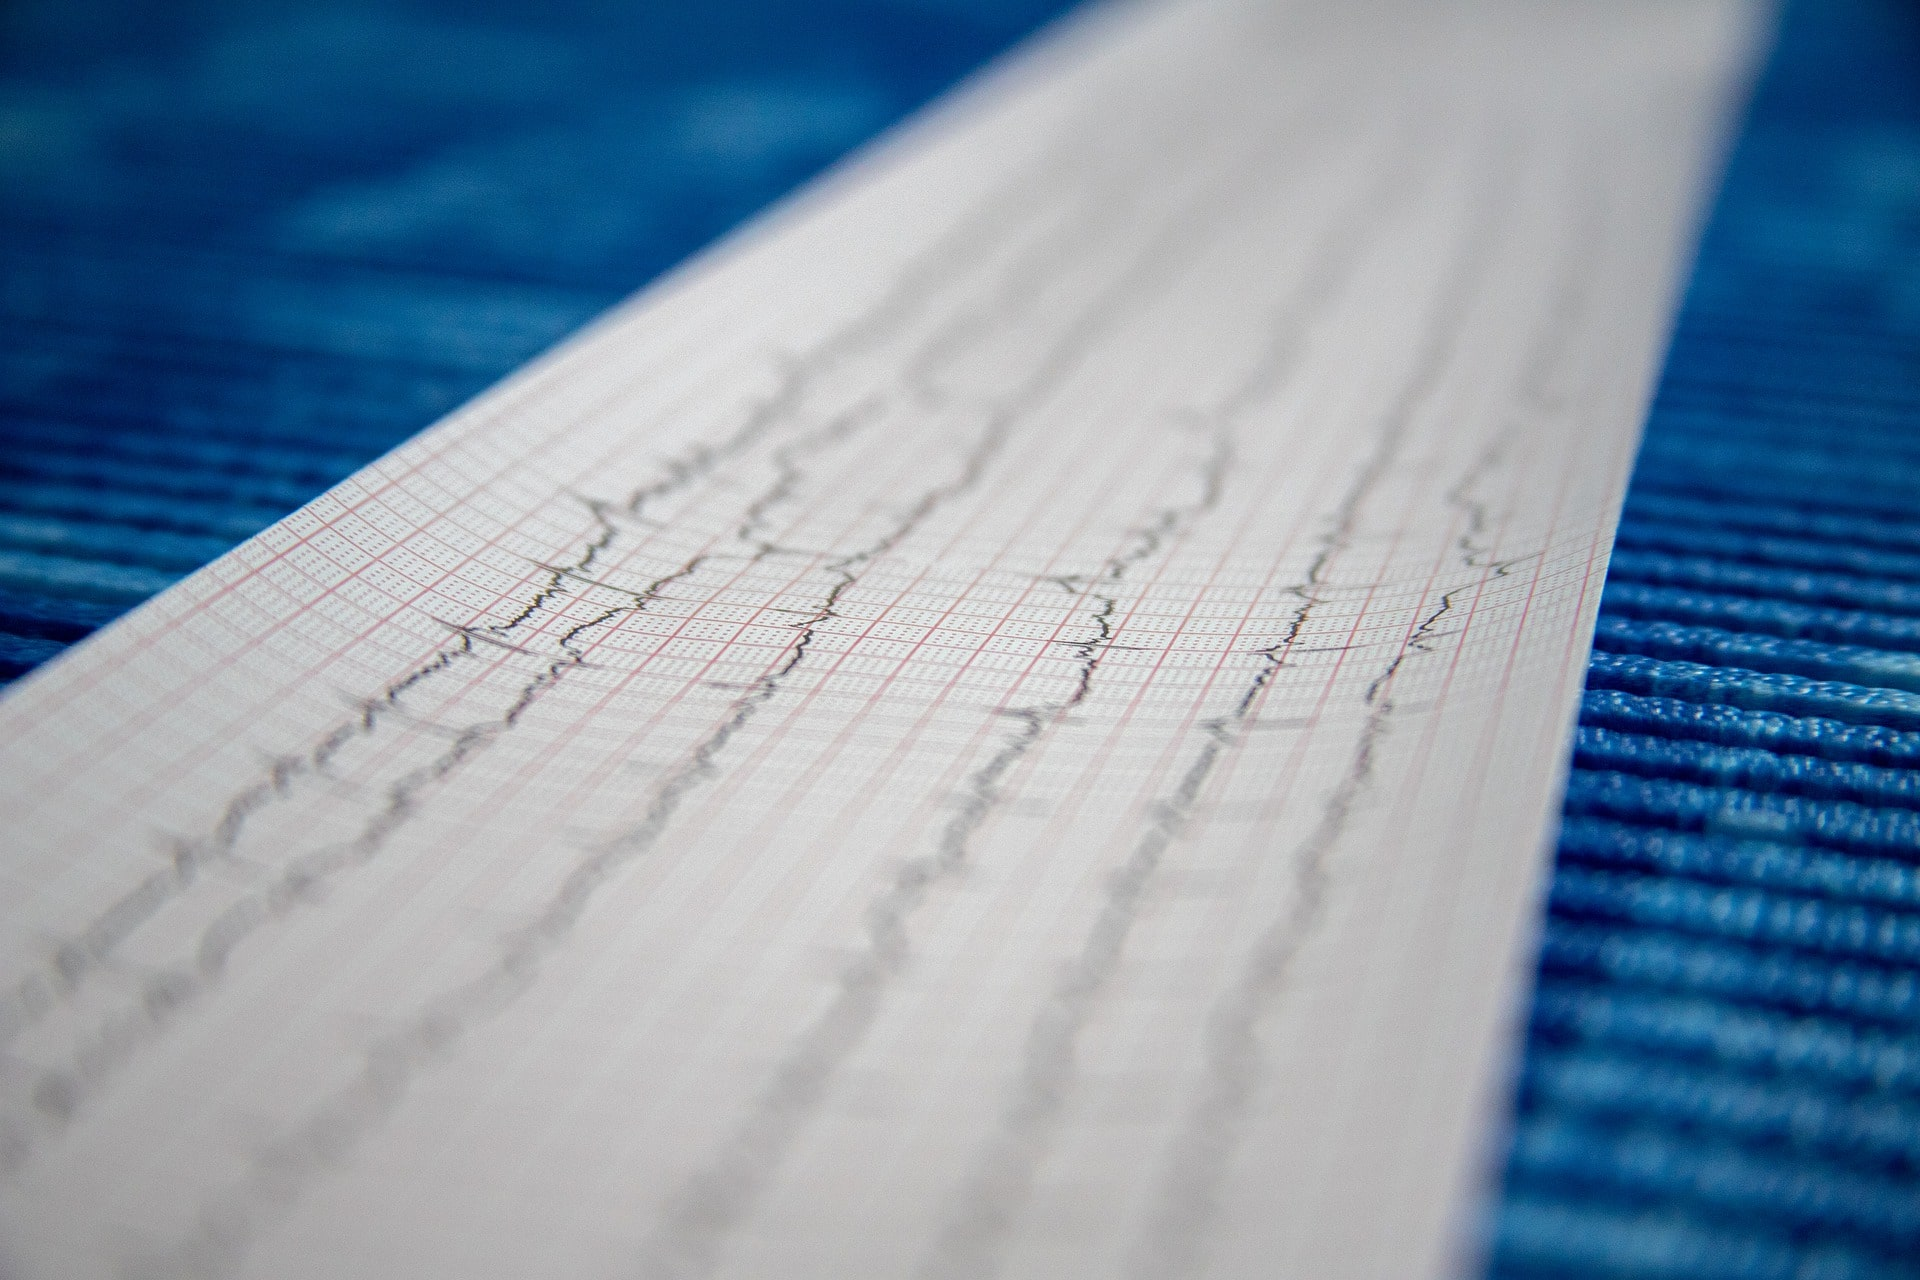 An Image of Electrocardiography